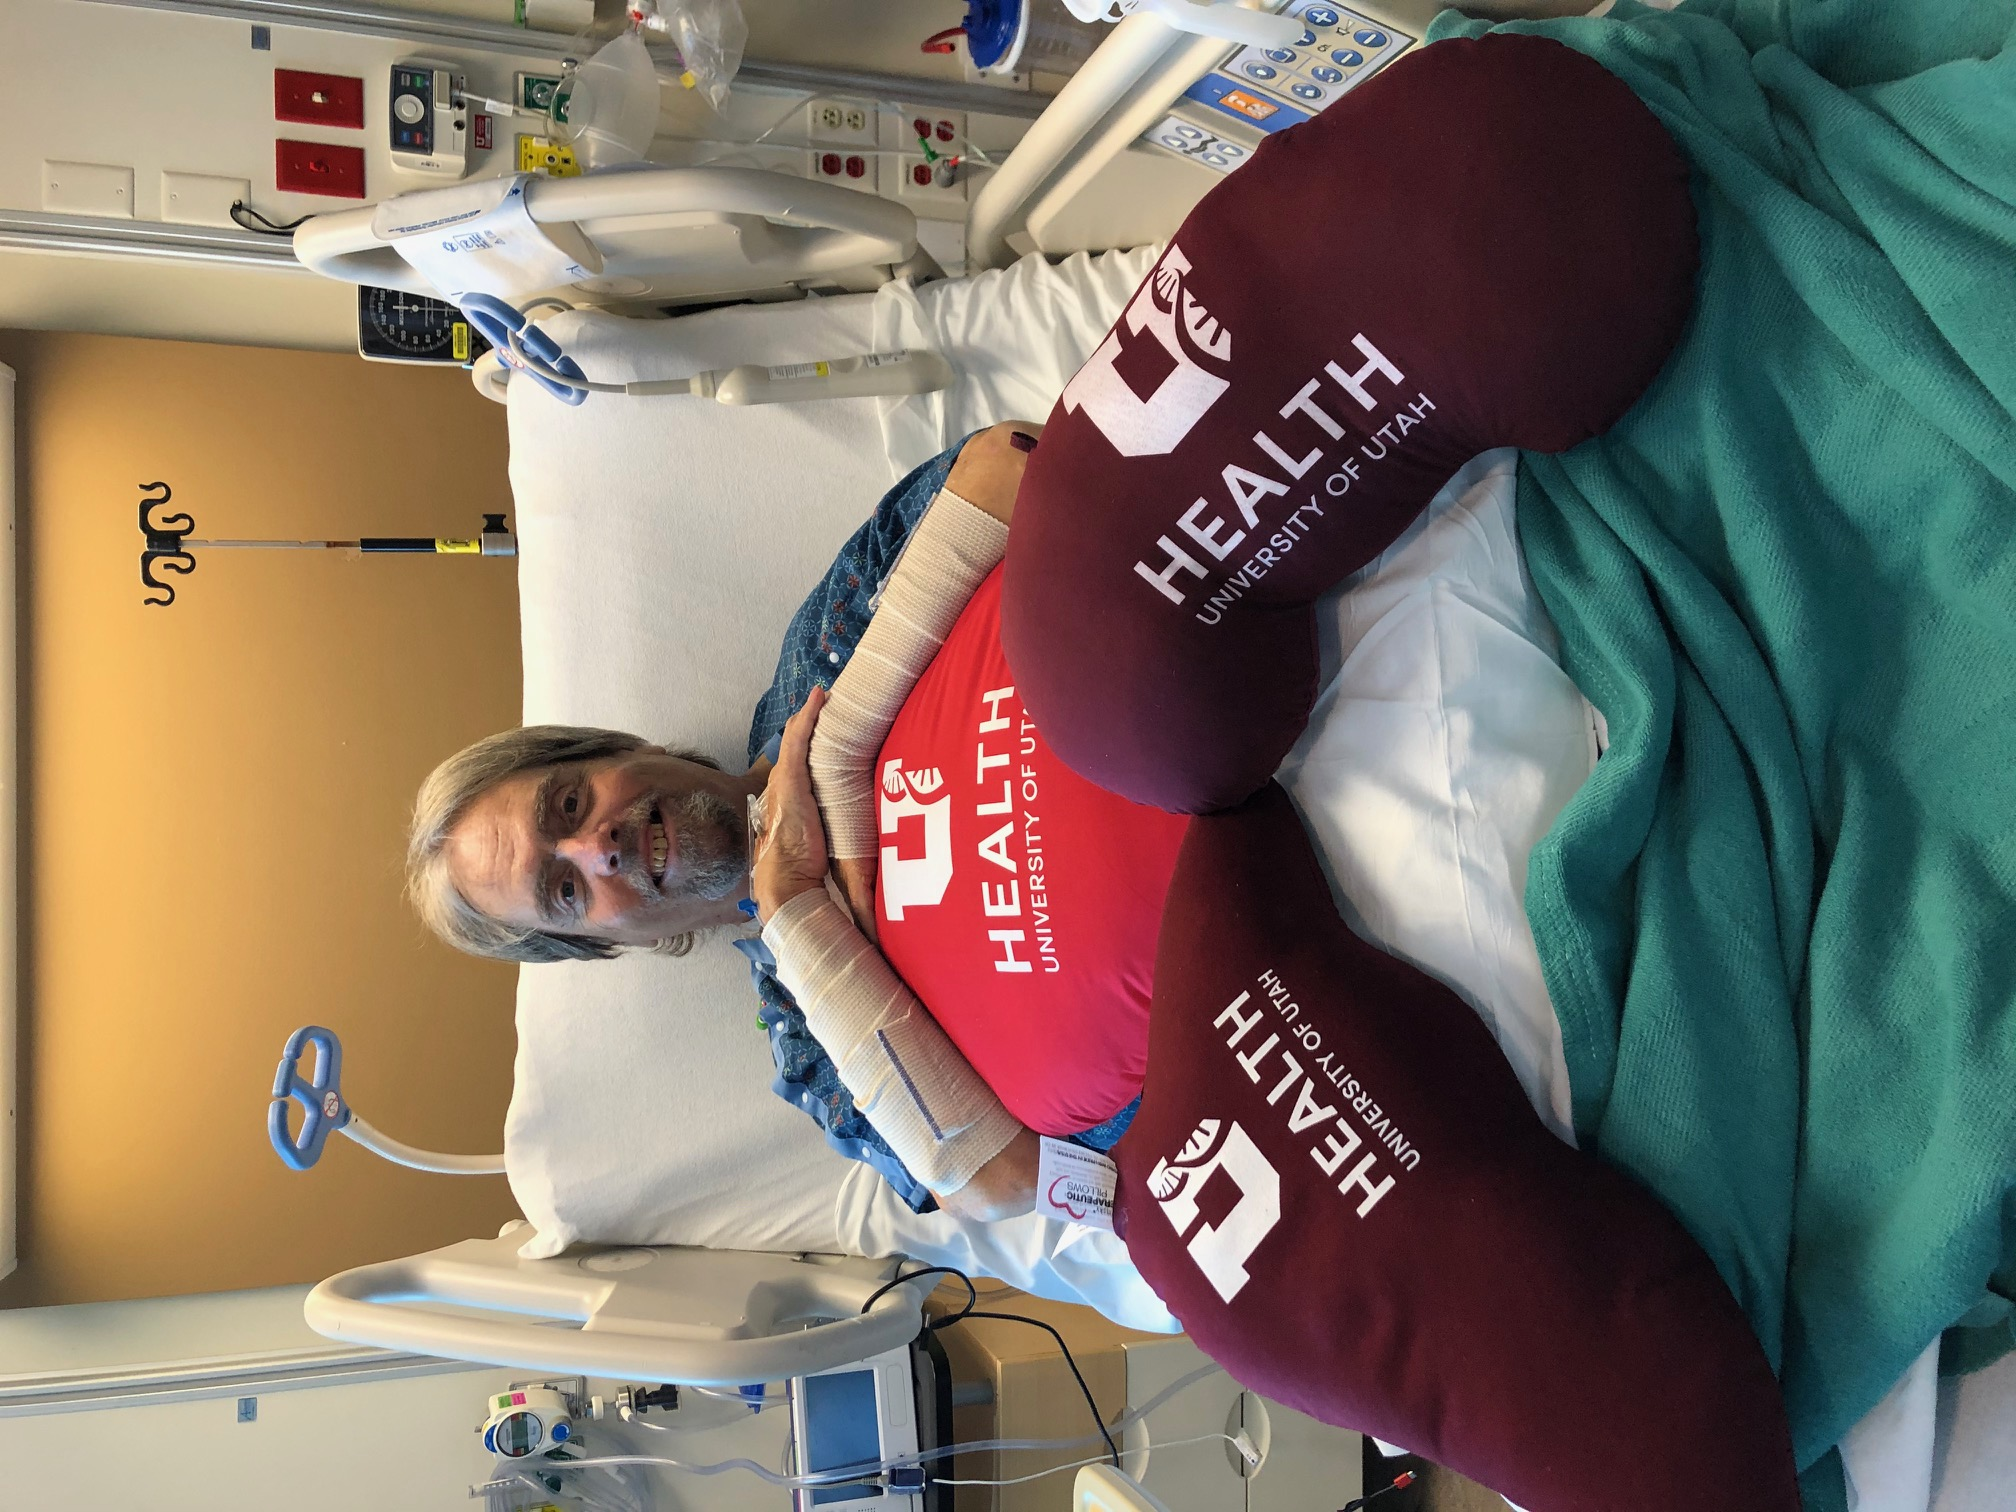 U of U Health Celebrates Veterans Day with First-Ever Triple Organ Transplant Surgery